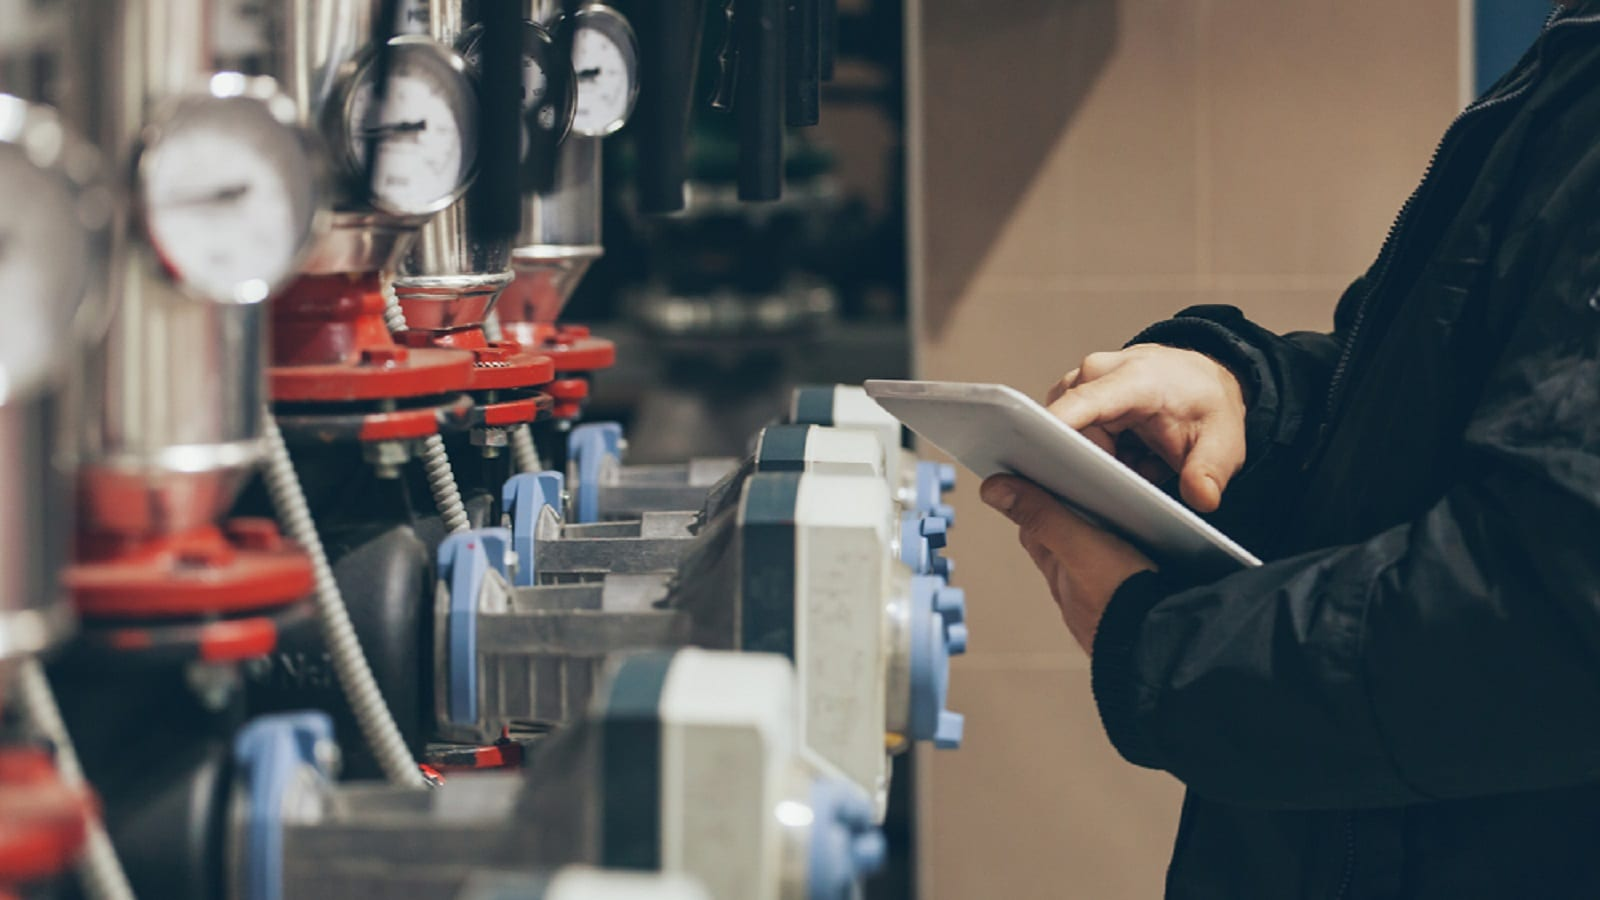 Maritime Engineer Working In A Boiler Room Stock Photo